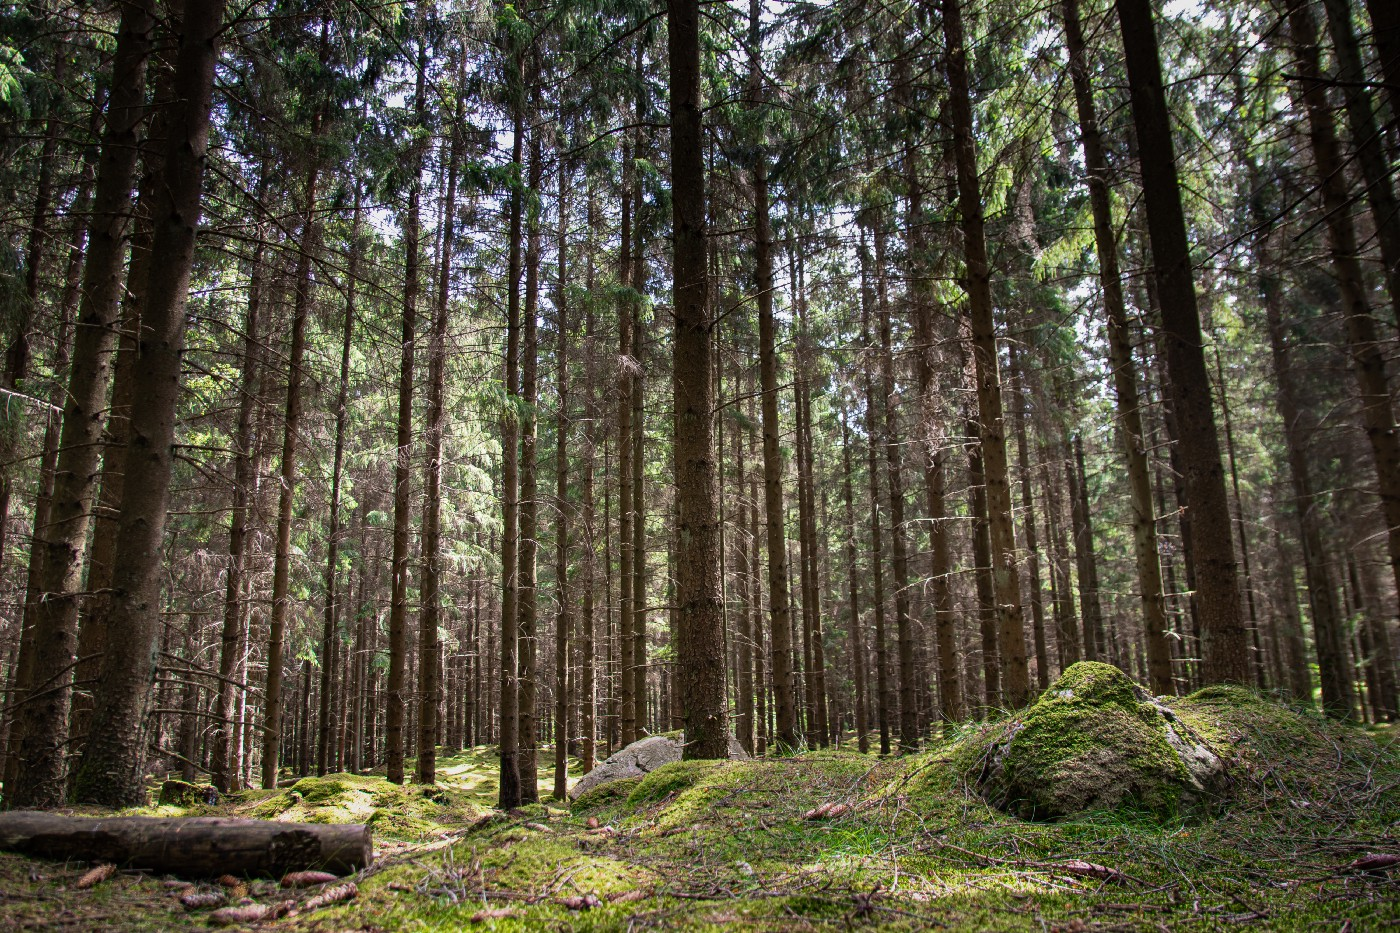 Forest of tall trees with mossy green grass covering the ground.